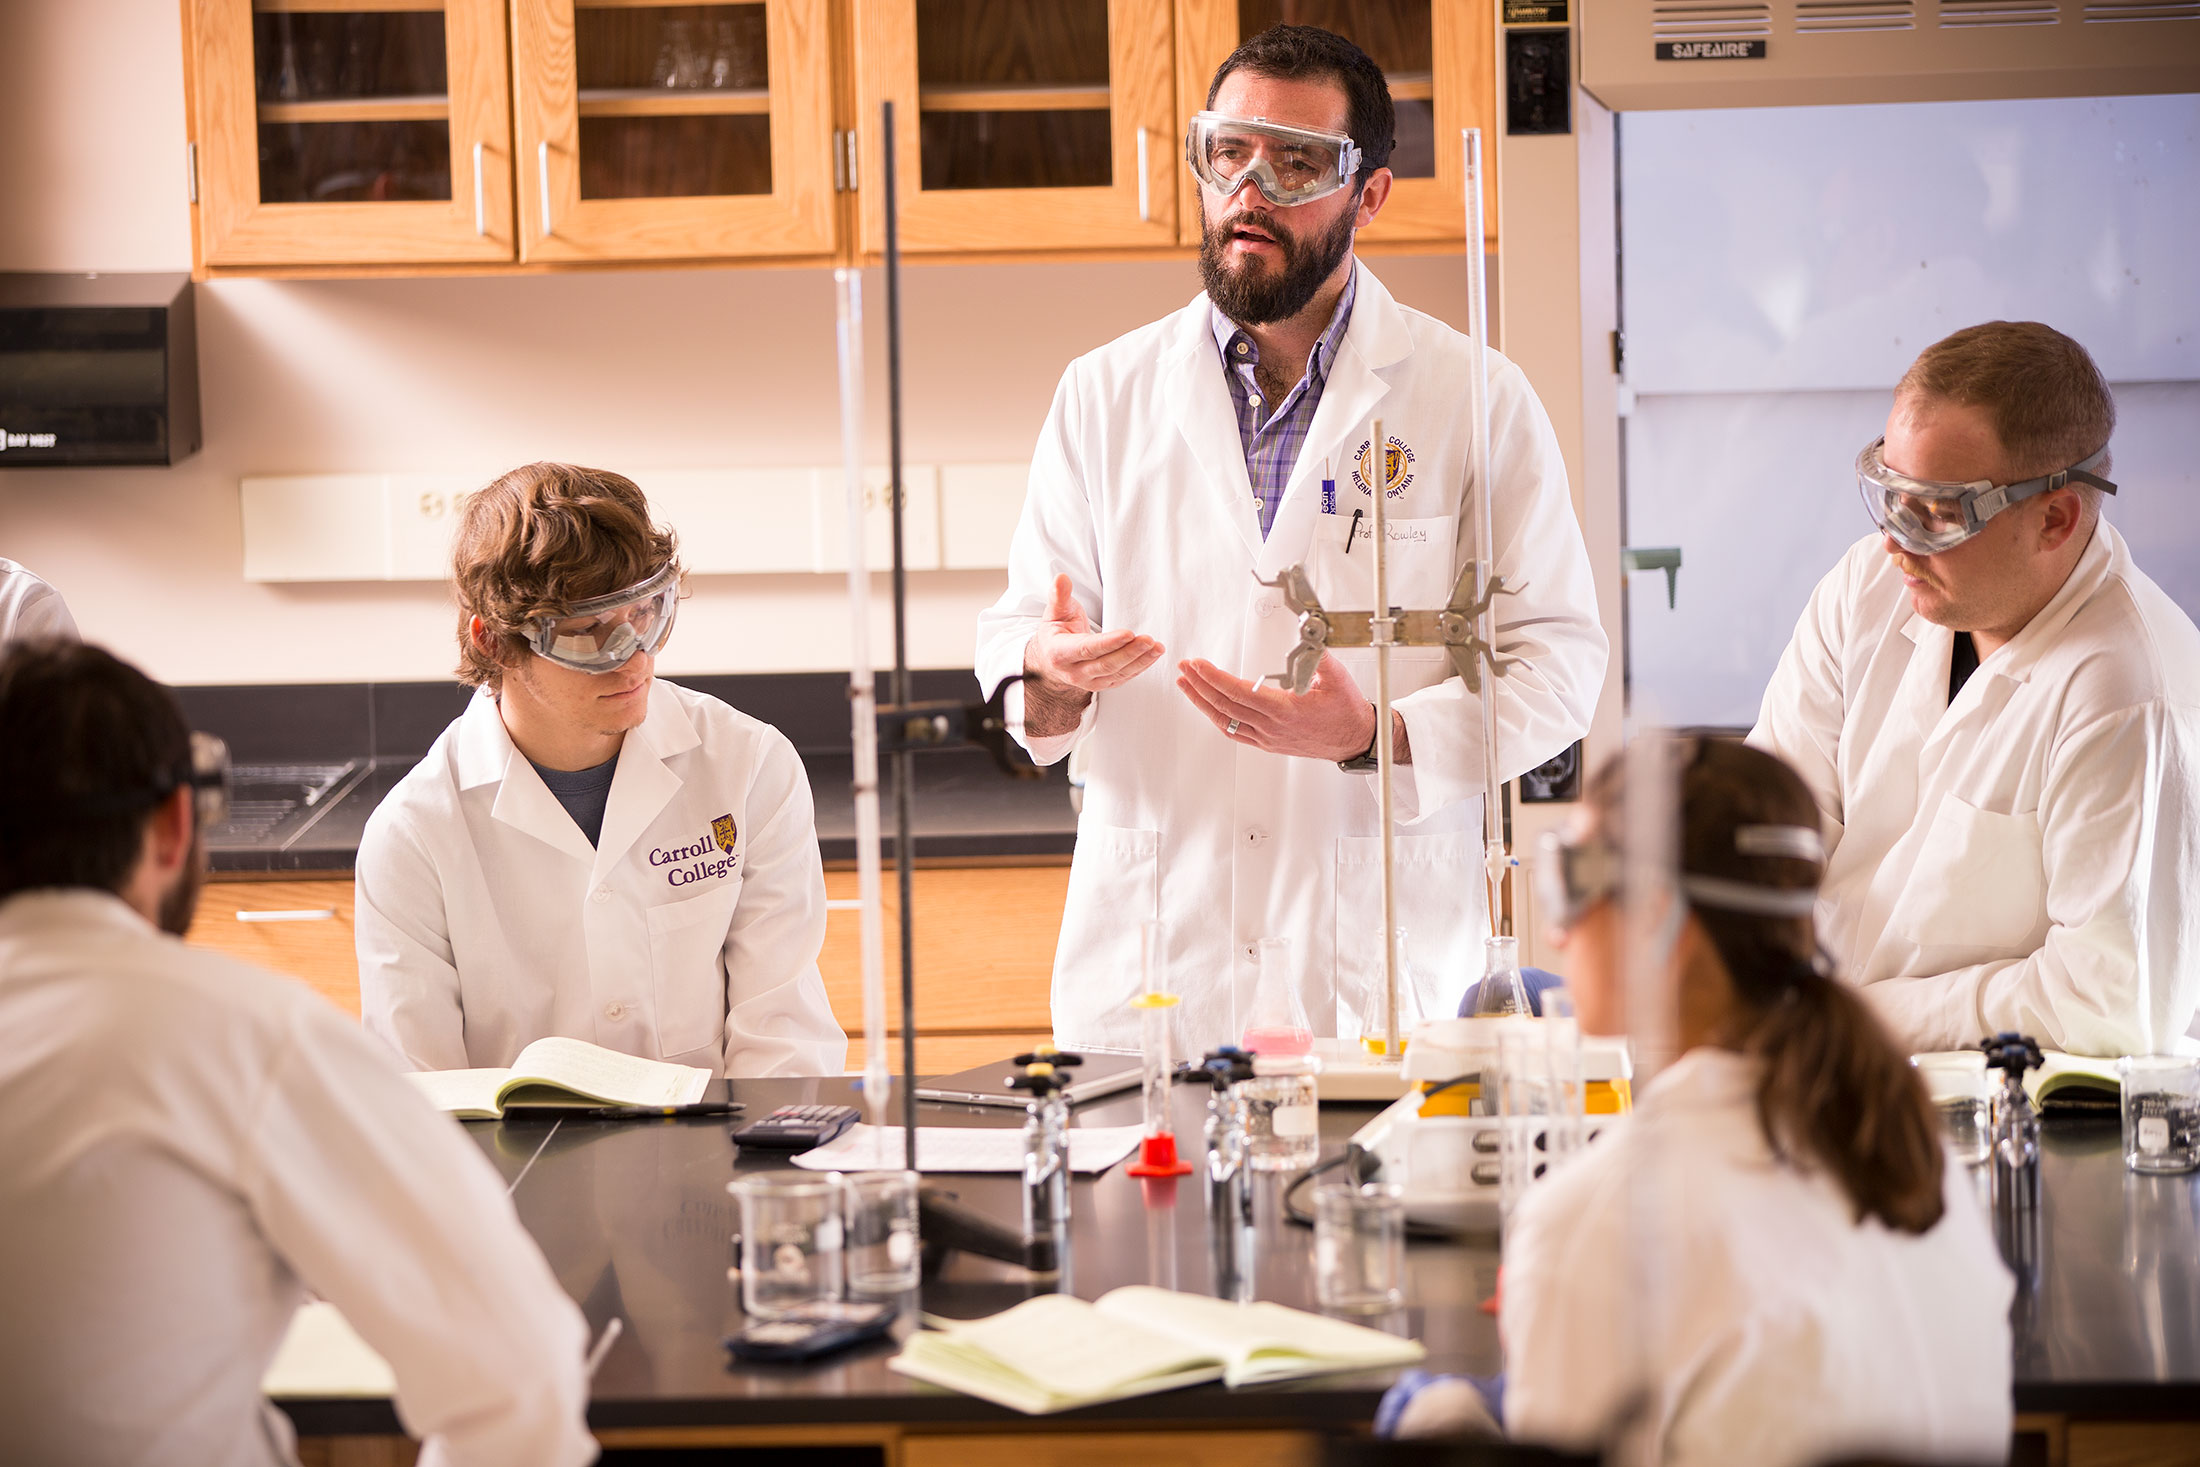 Professor John Rowley teaching a lab with students.